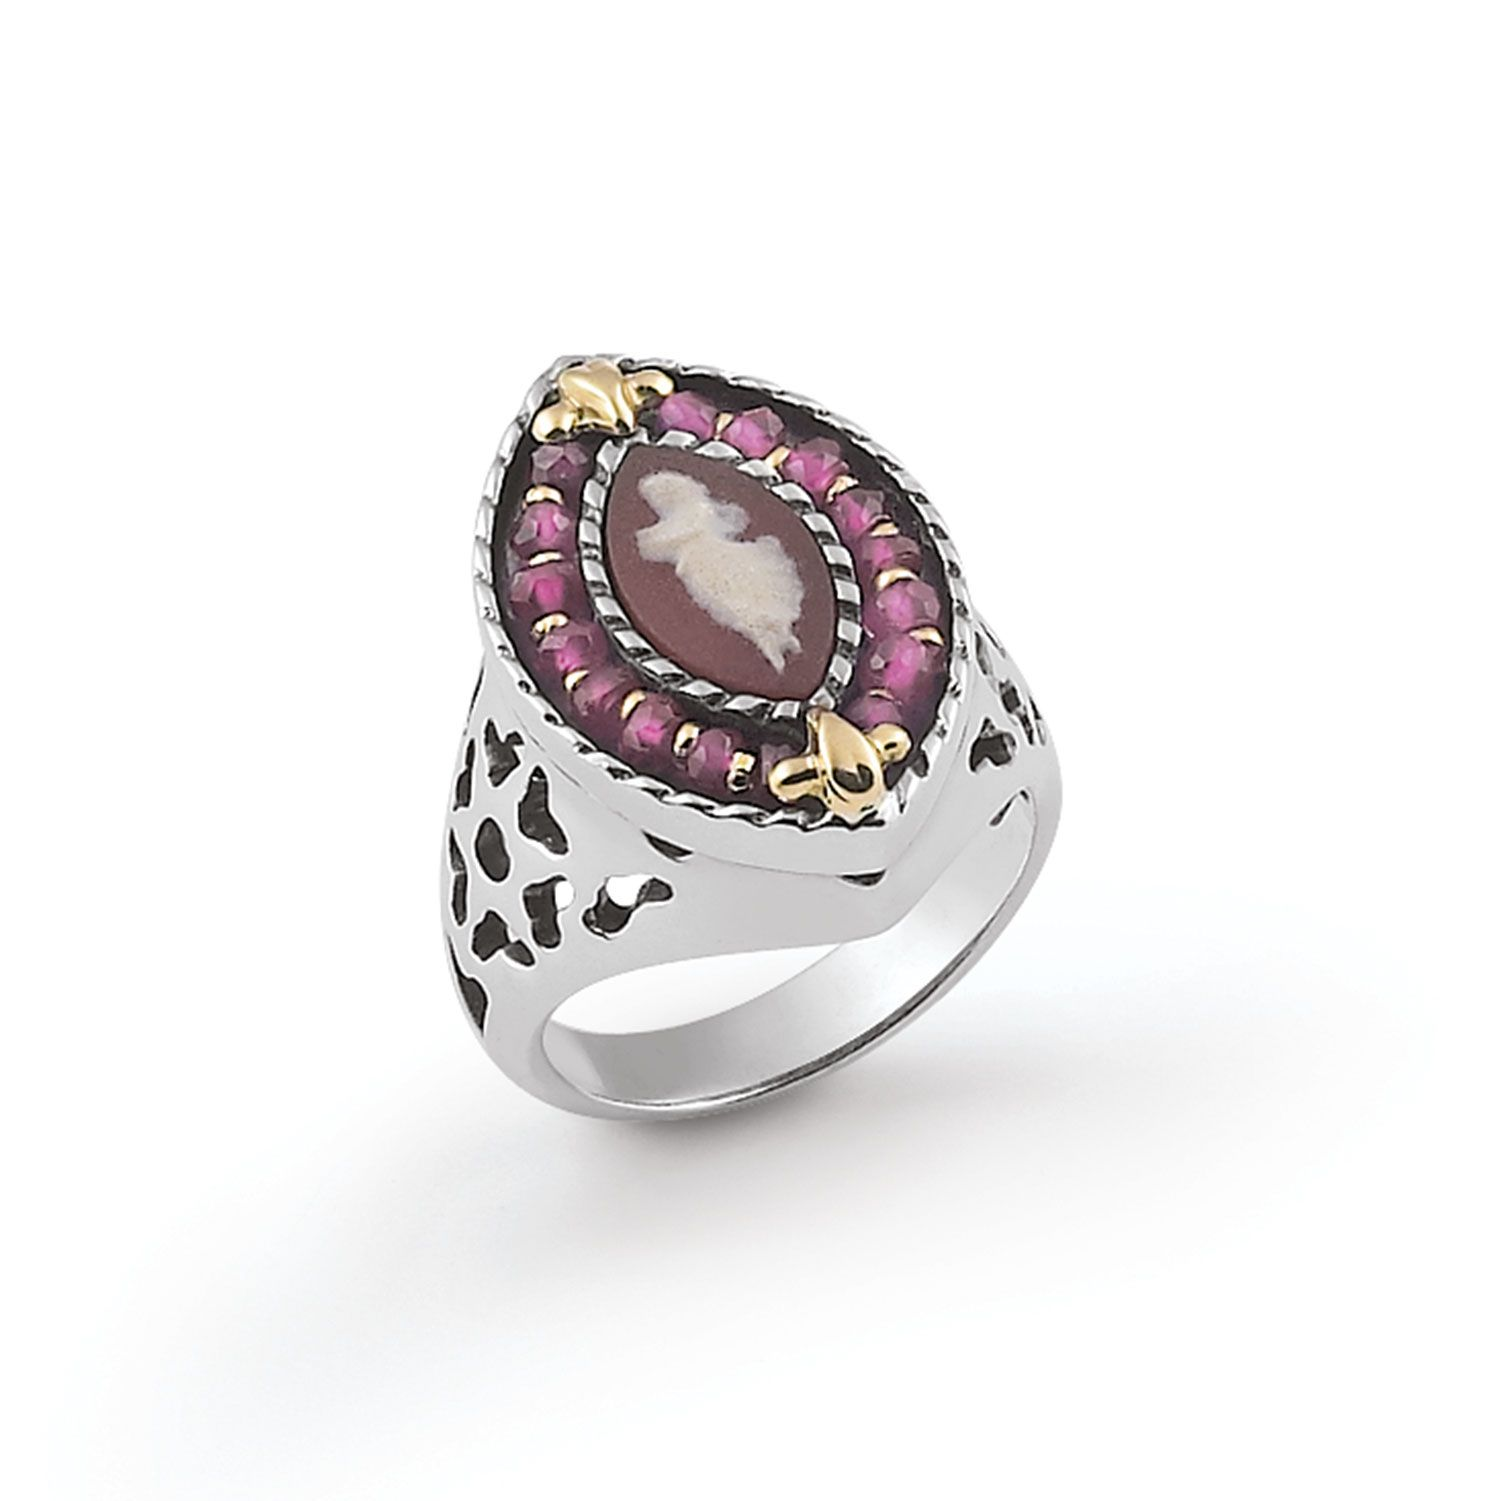 Ring with colored Cameo and Zircons (19243ro)